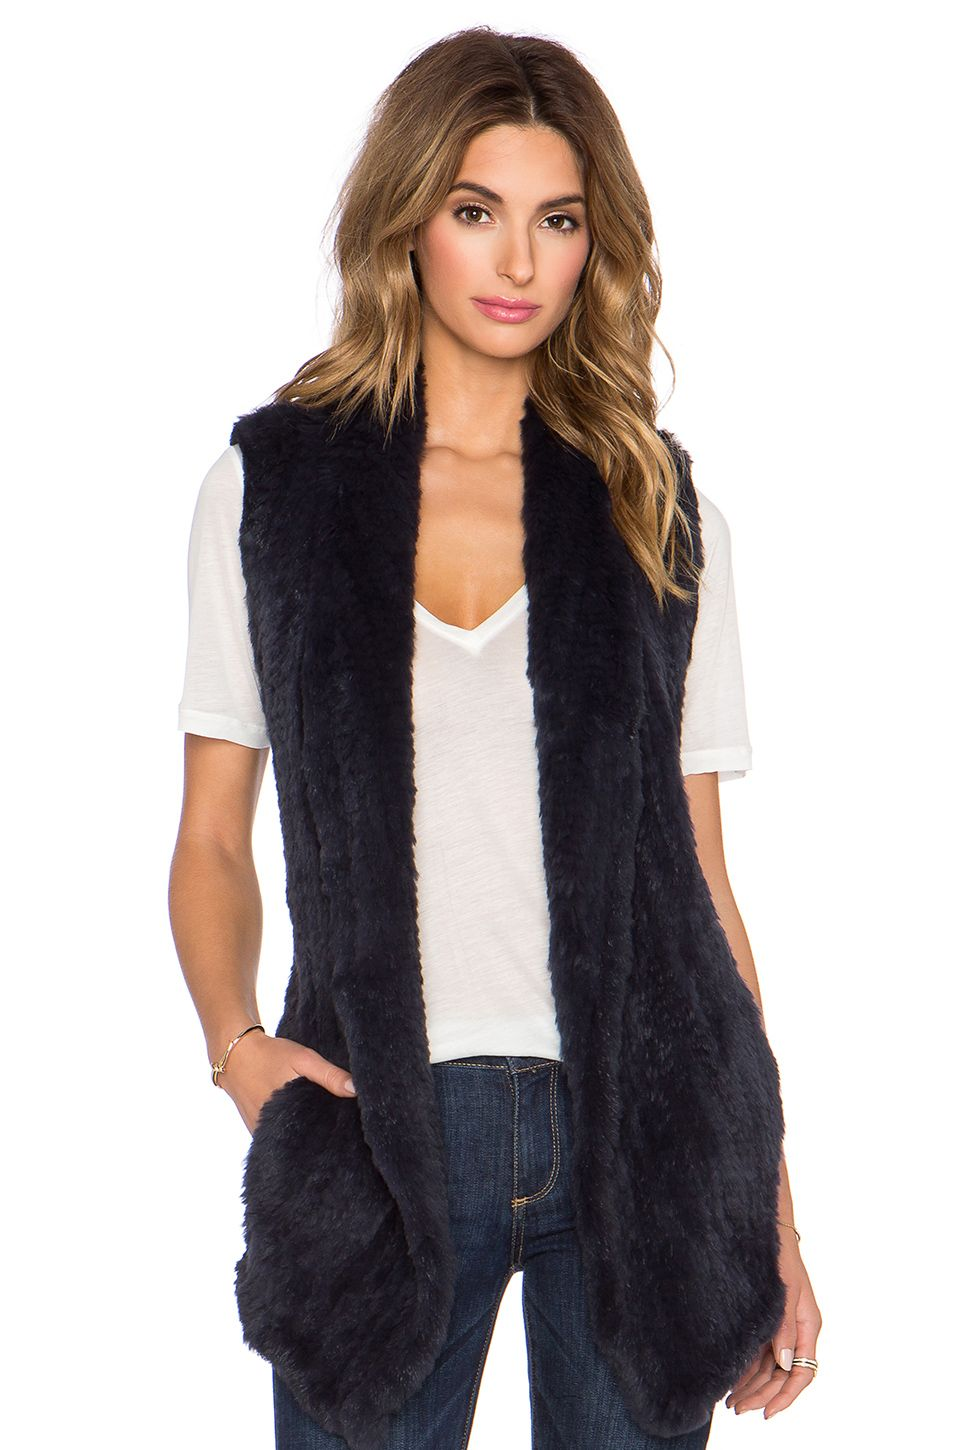 June Long Rabbit Fur Vest... Love this one, just not in